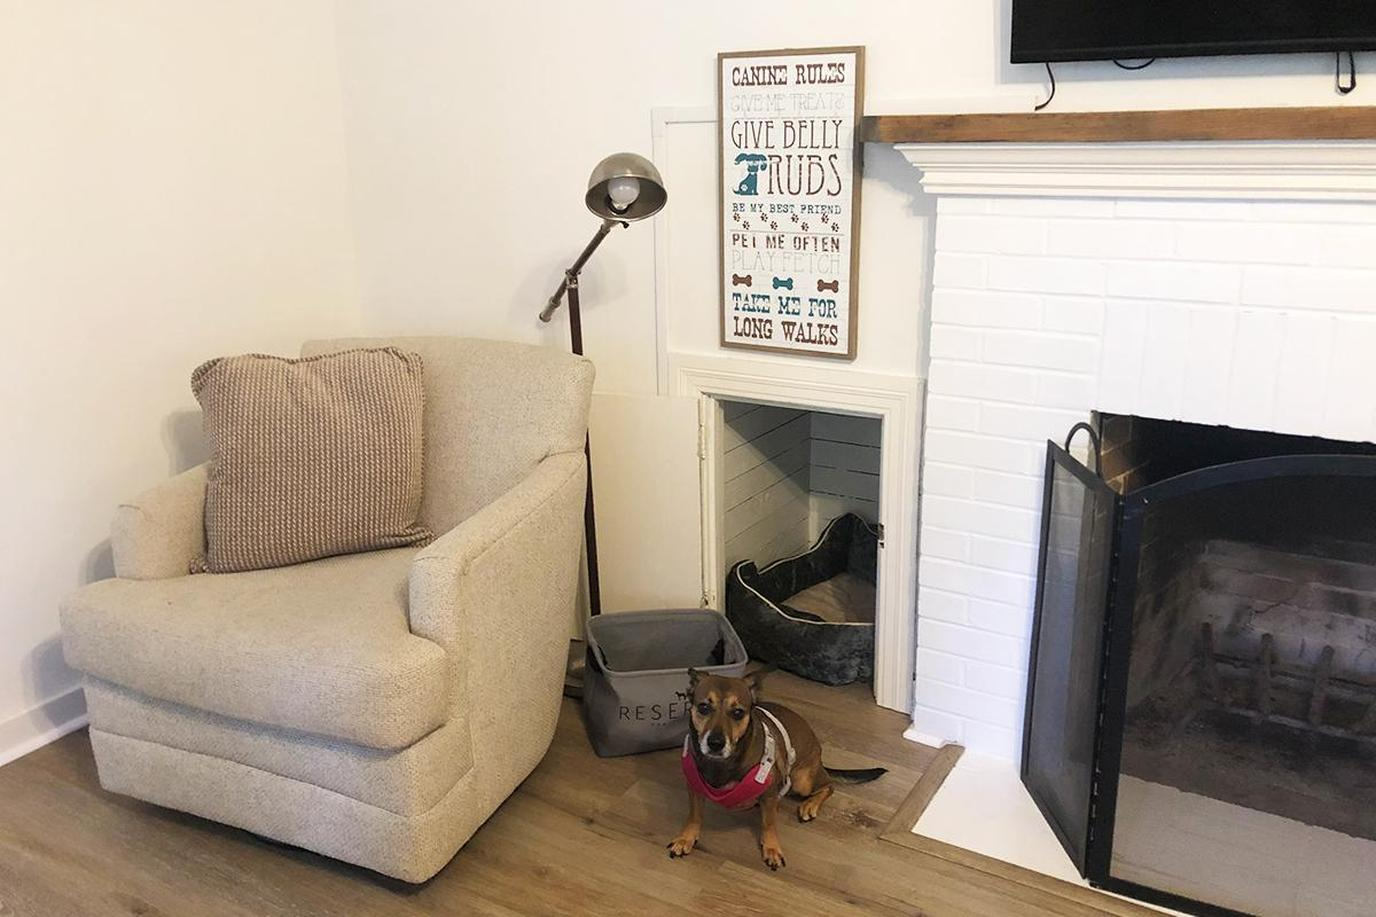 a dog on a vacation rental